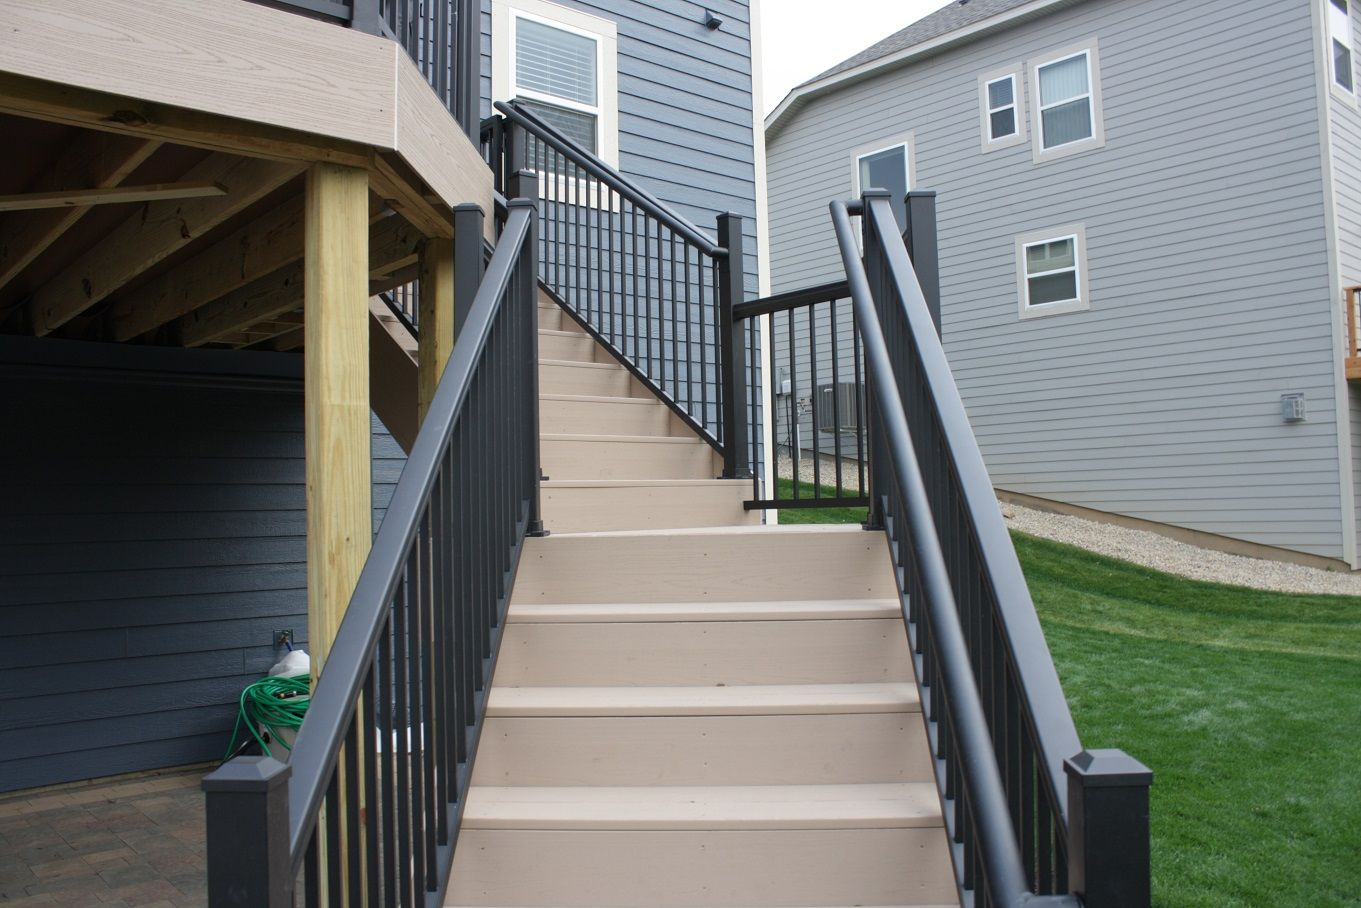 Ultralox Interlocking Powder Coated Aluminum Railing